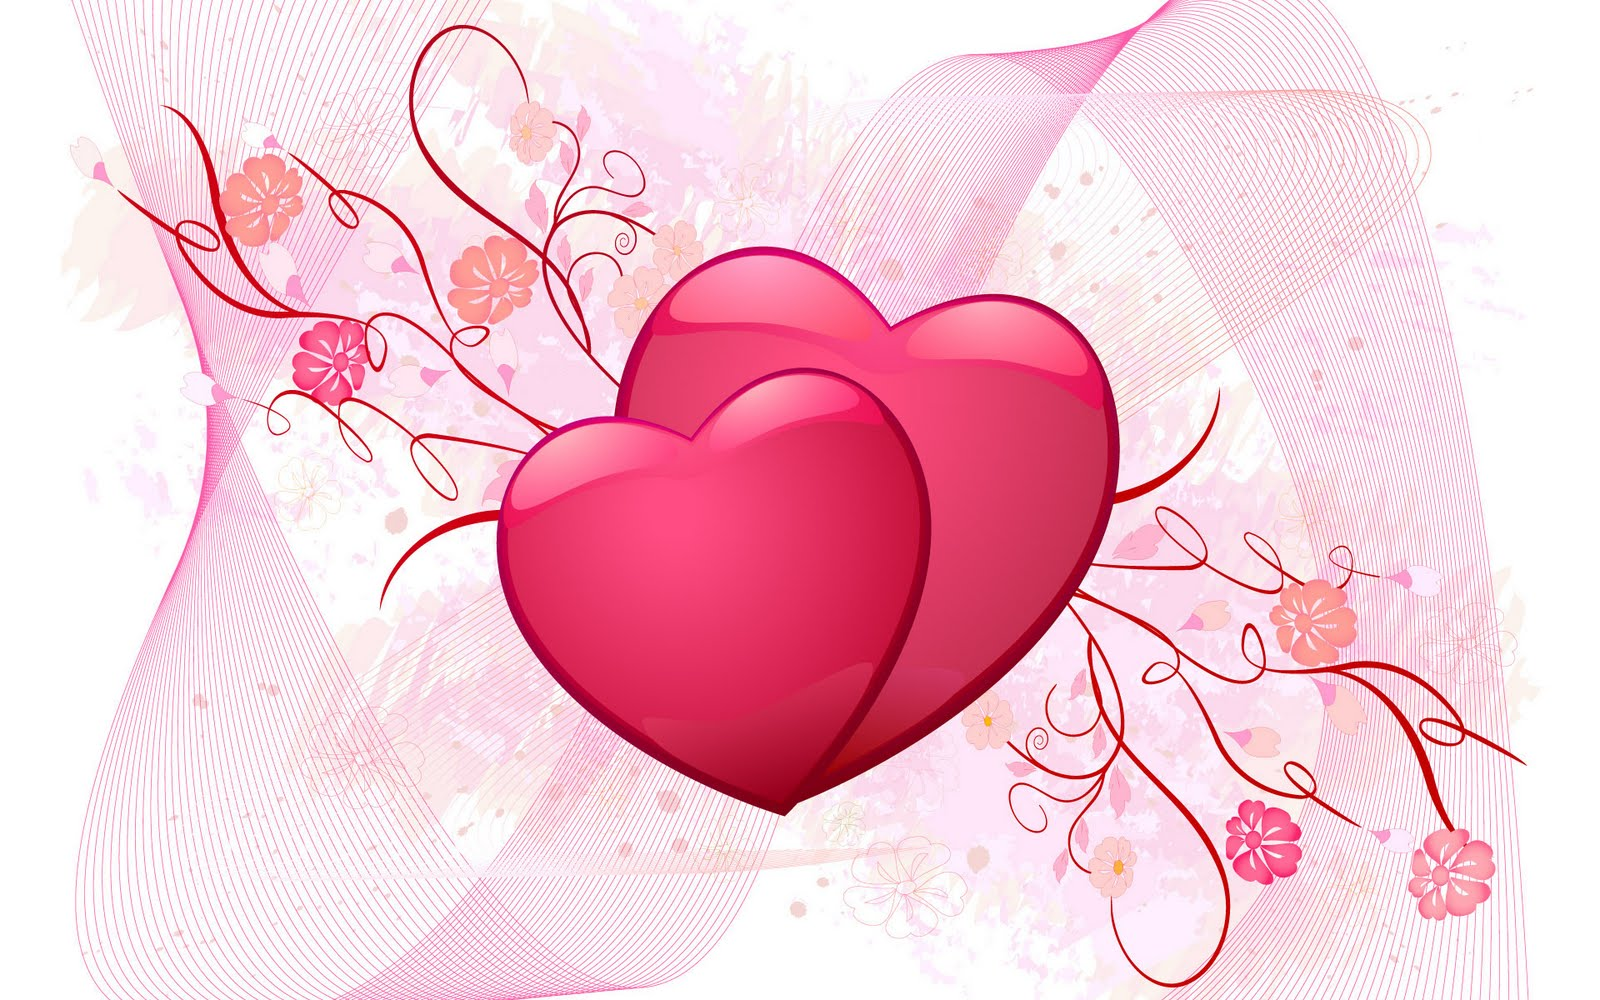 Love Wallpaper Sms : Love Wallpapers Free SMS, Messages, Quotes, Wallpapers